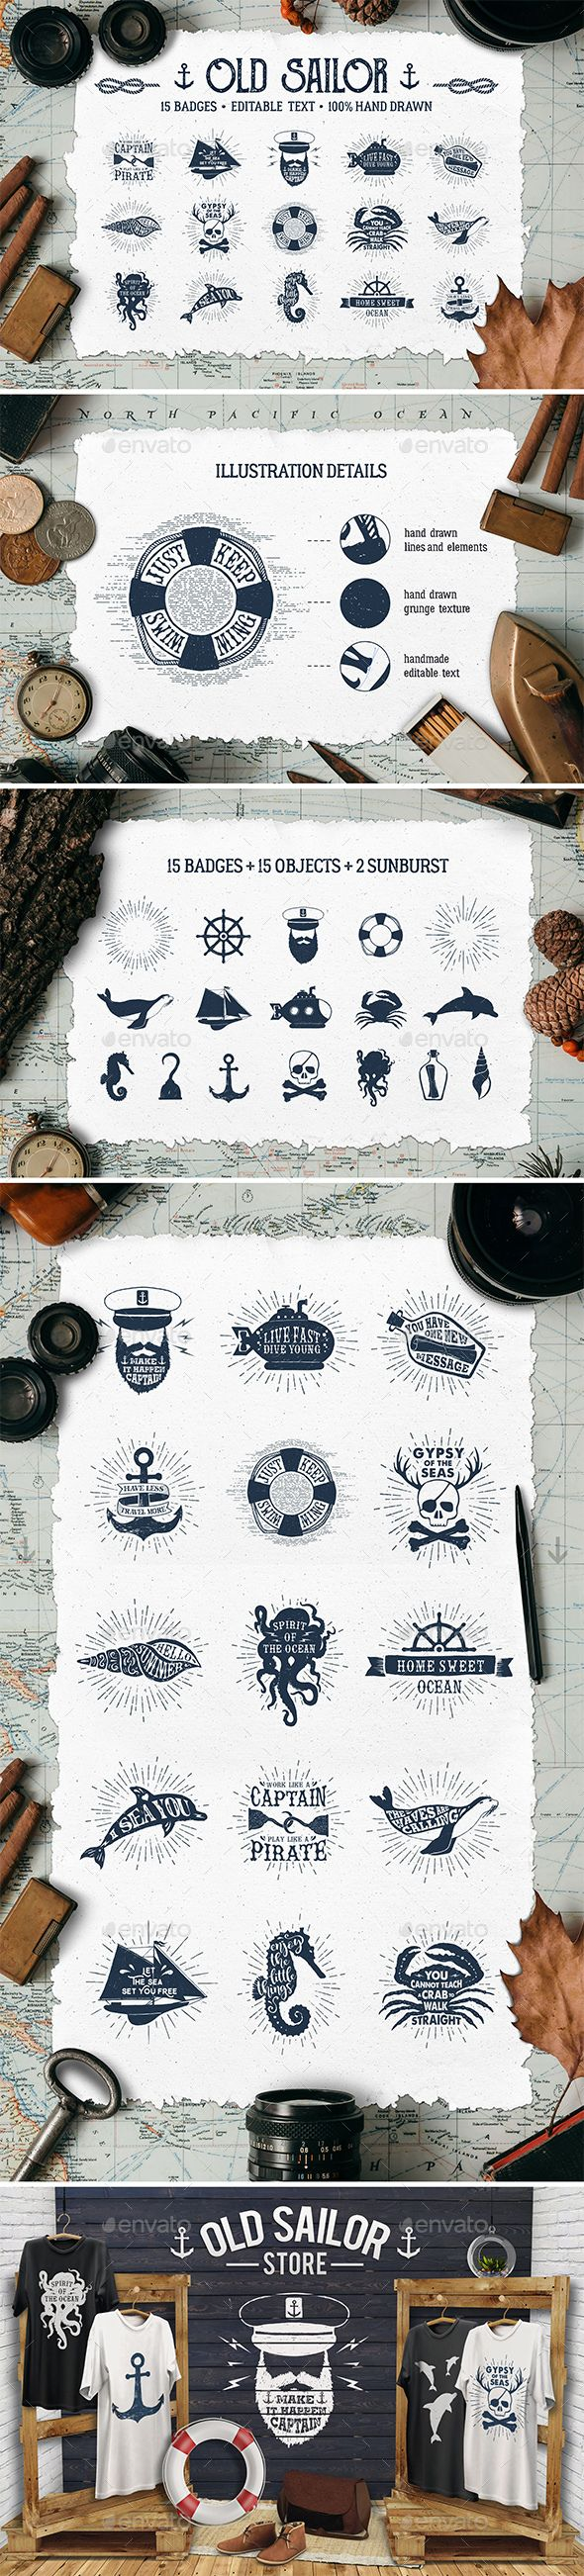 Old Sailor Vintage Badges Vol.1 - Travel Conceptual Download here : https://graphicriver.net/item/old-sailor-vintage-badges-vol1/19257468?s_rank=291&ref=Al-fatih